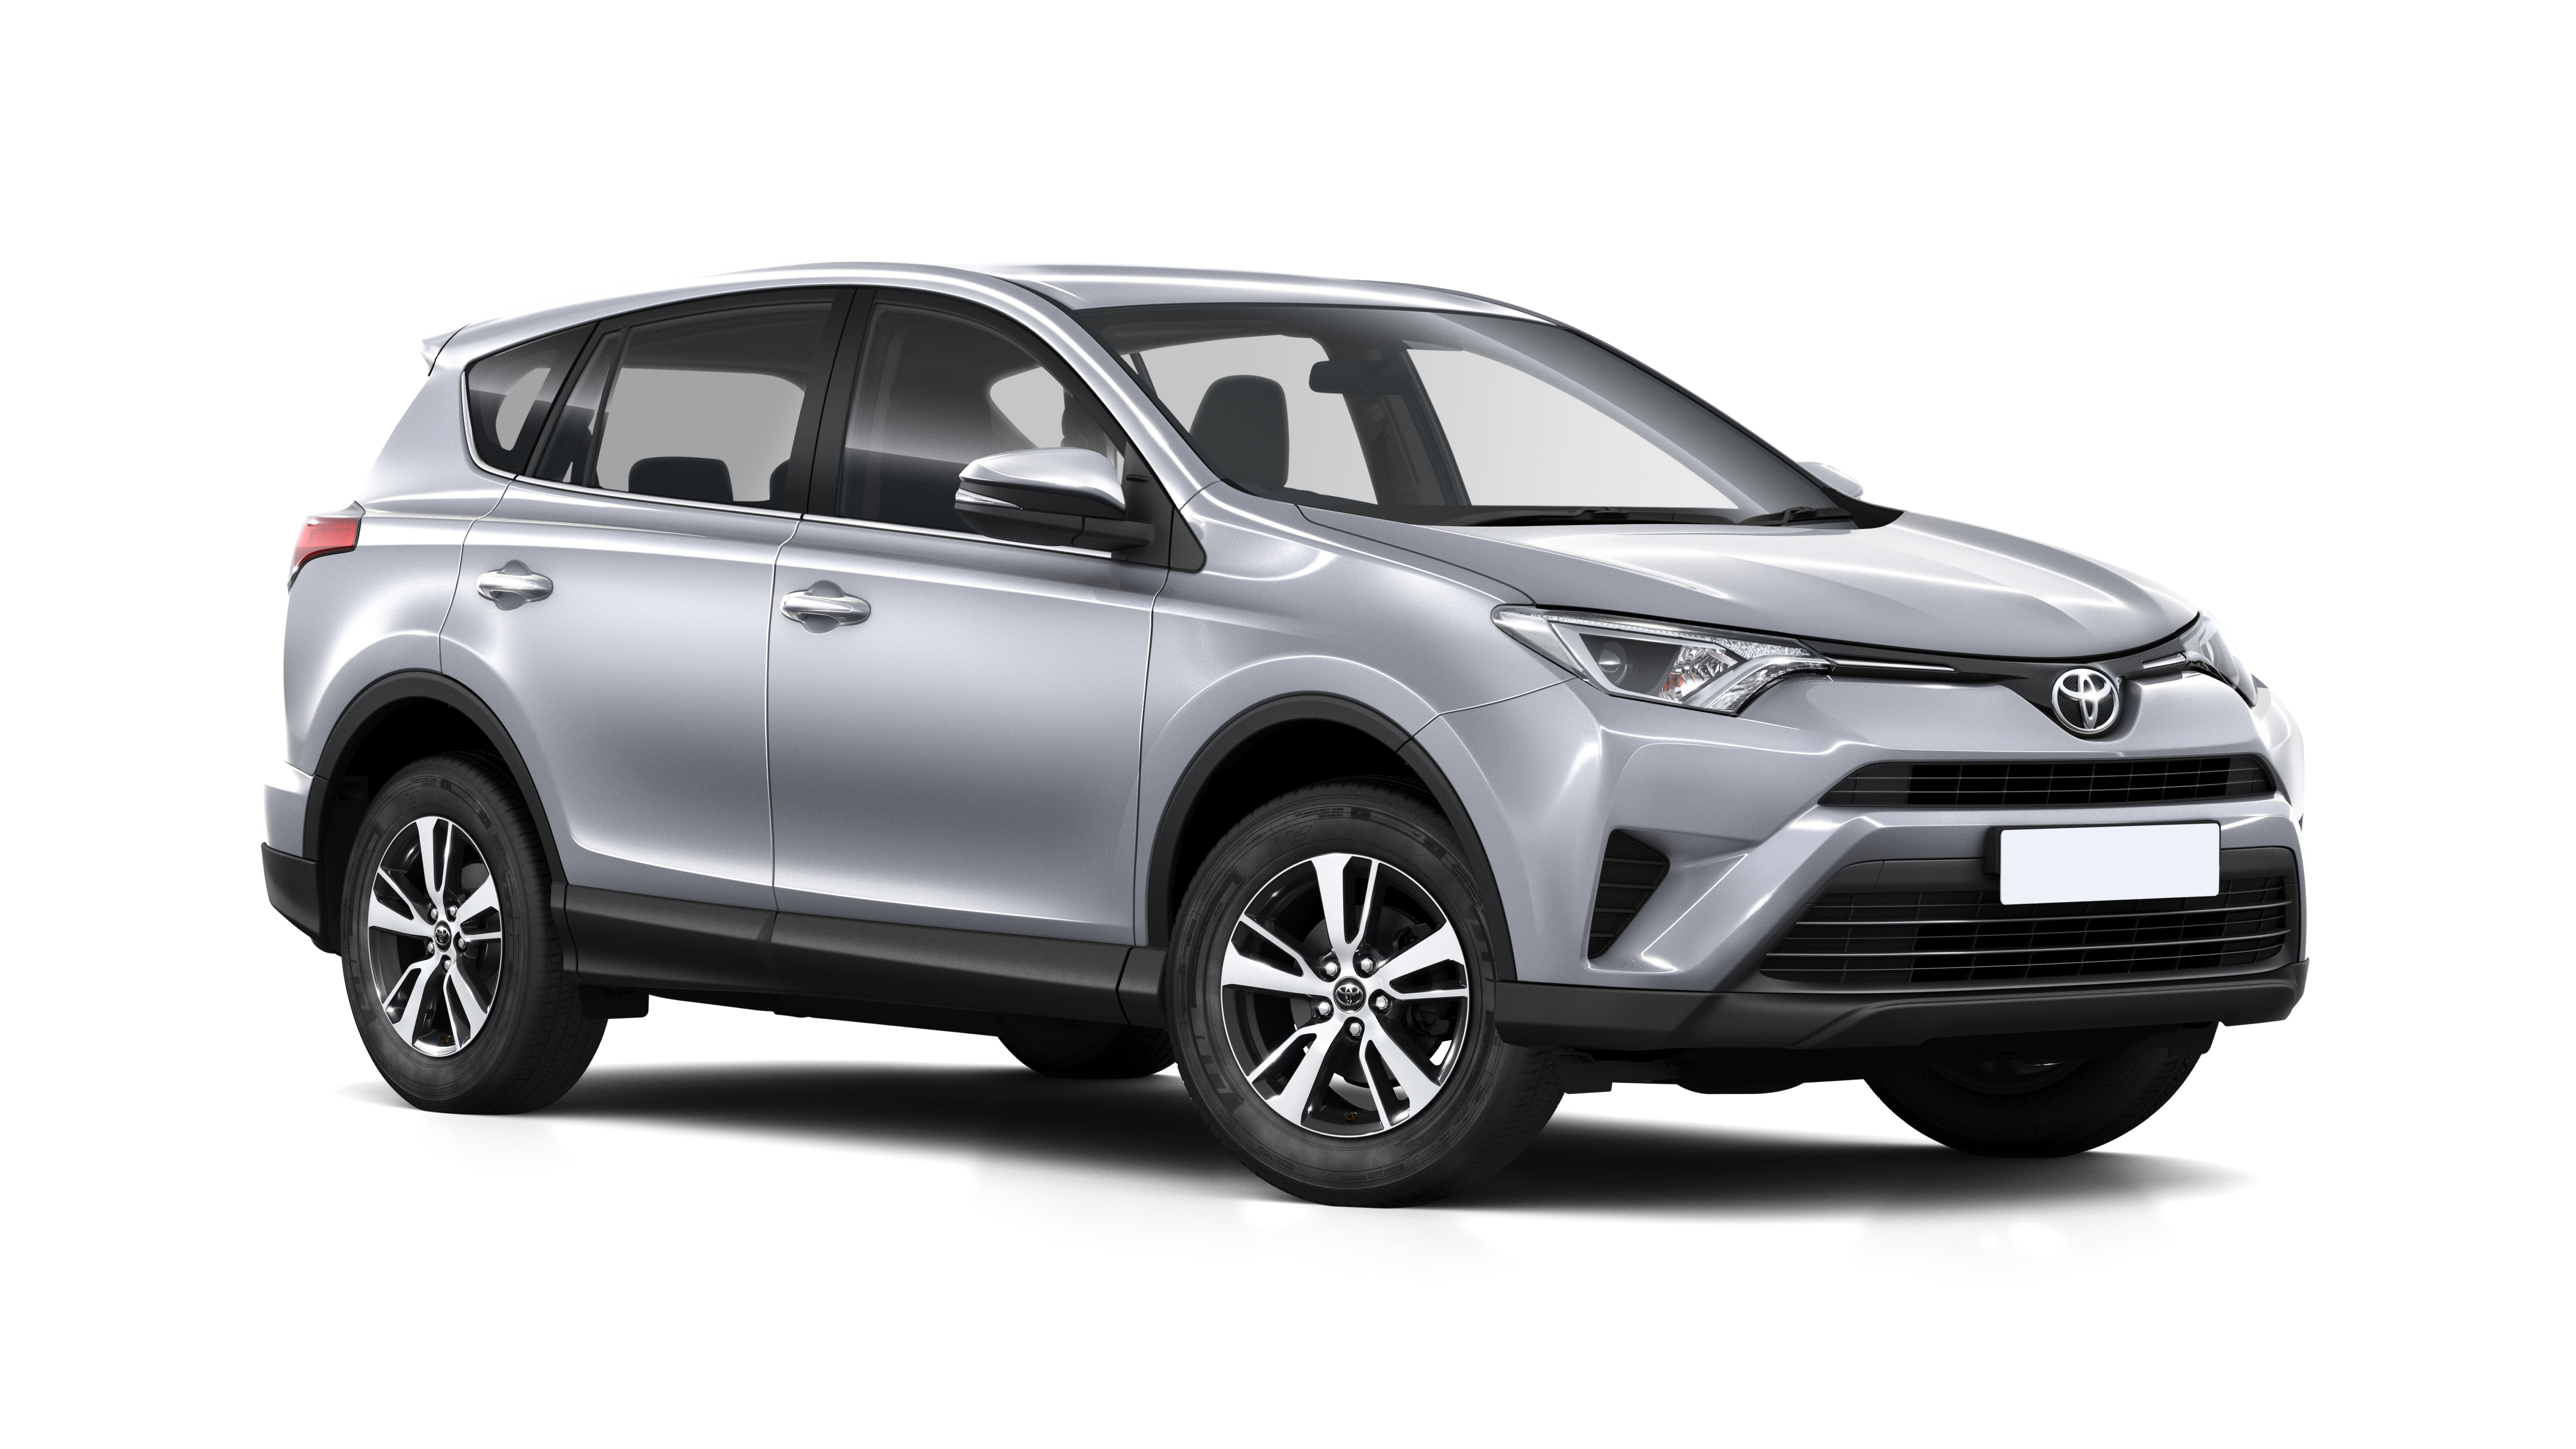 toyota rav4 automatic 4x4 2016 from mycar guide to iceland. Black Bedroom Furniture Sets. Home Design Ideas